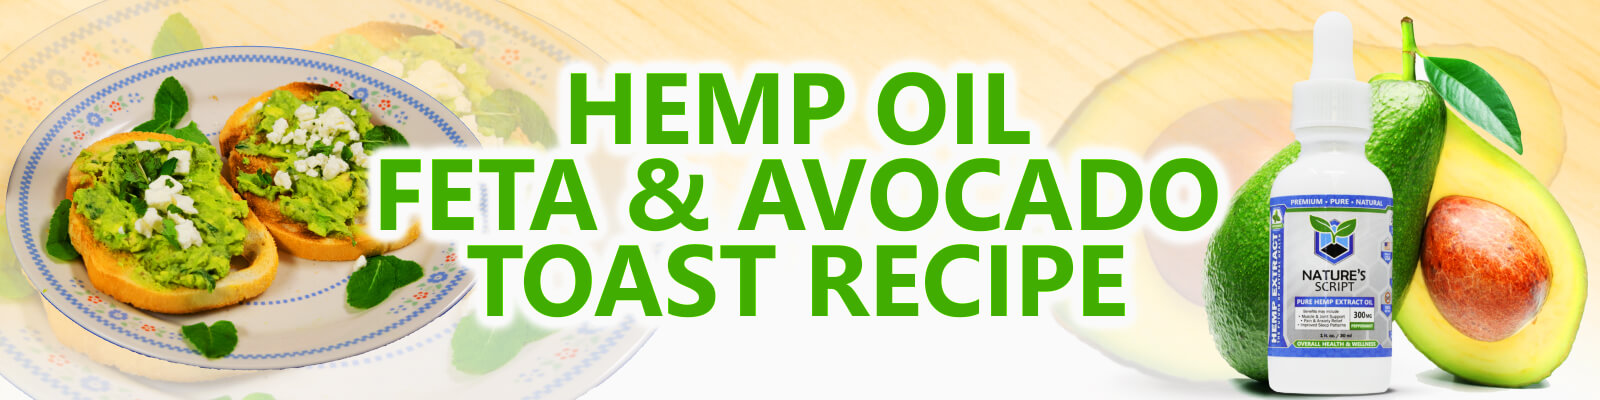 hemp oil avocado toast banner